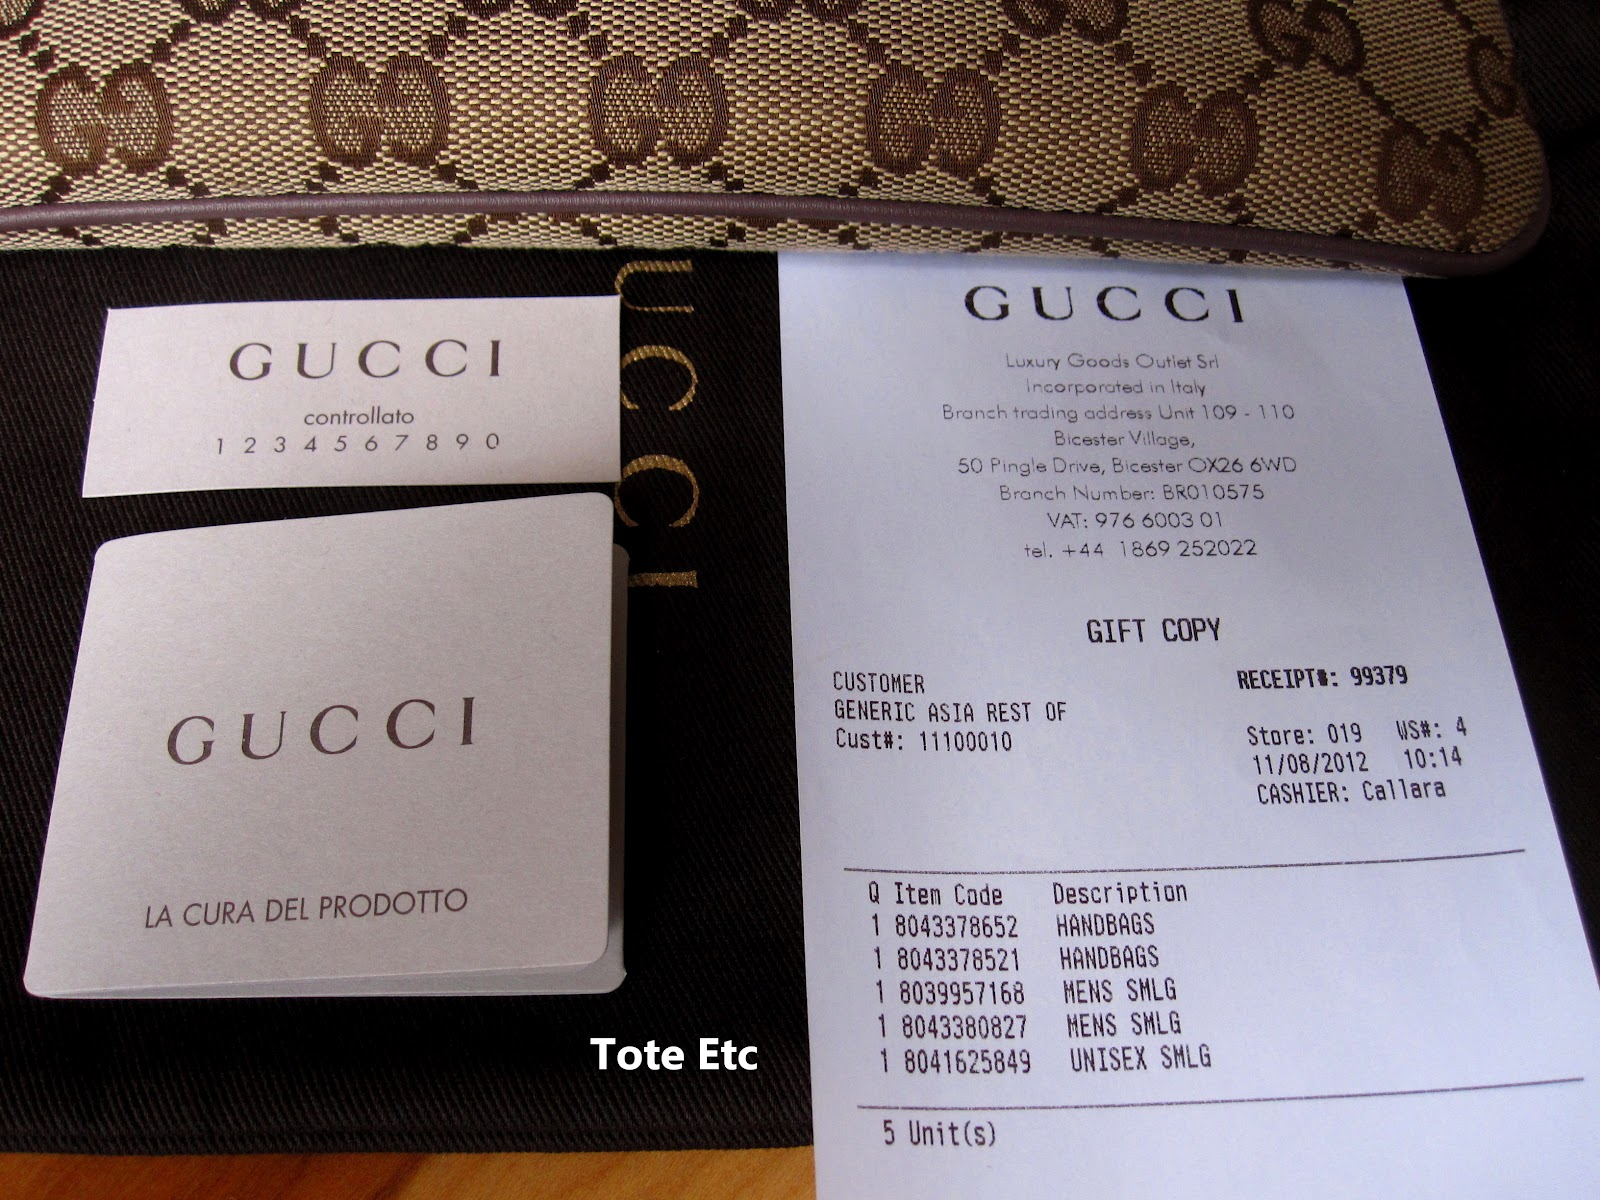 tote etc gucci purse wristlet